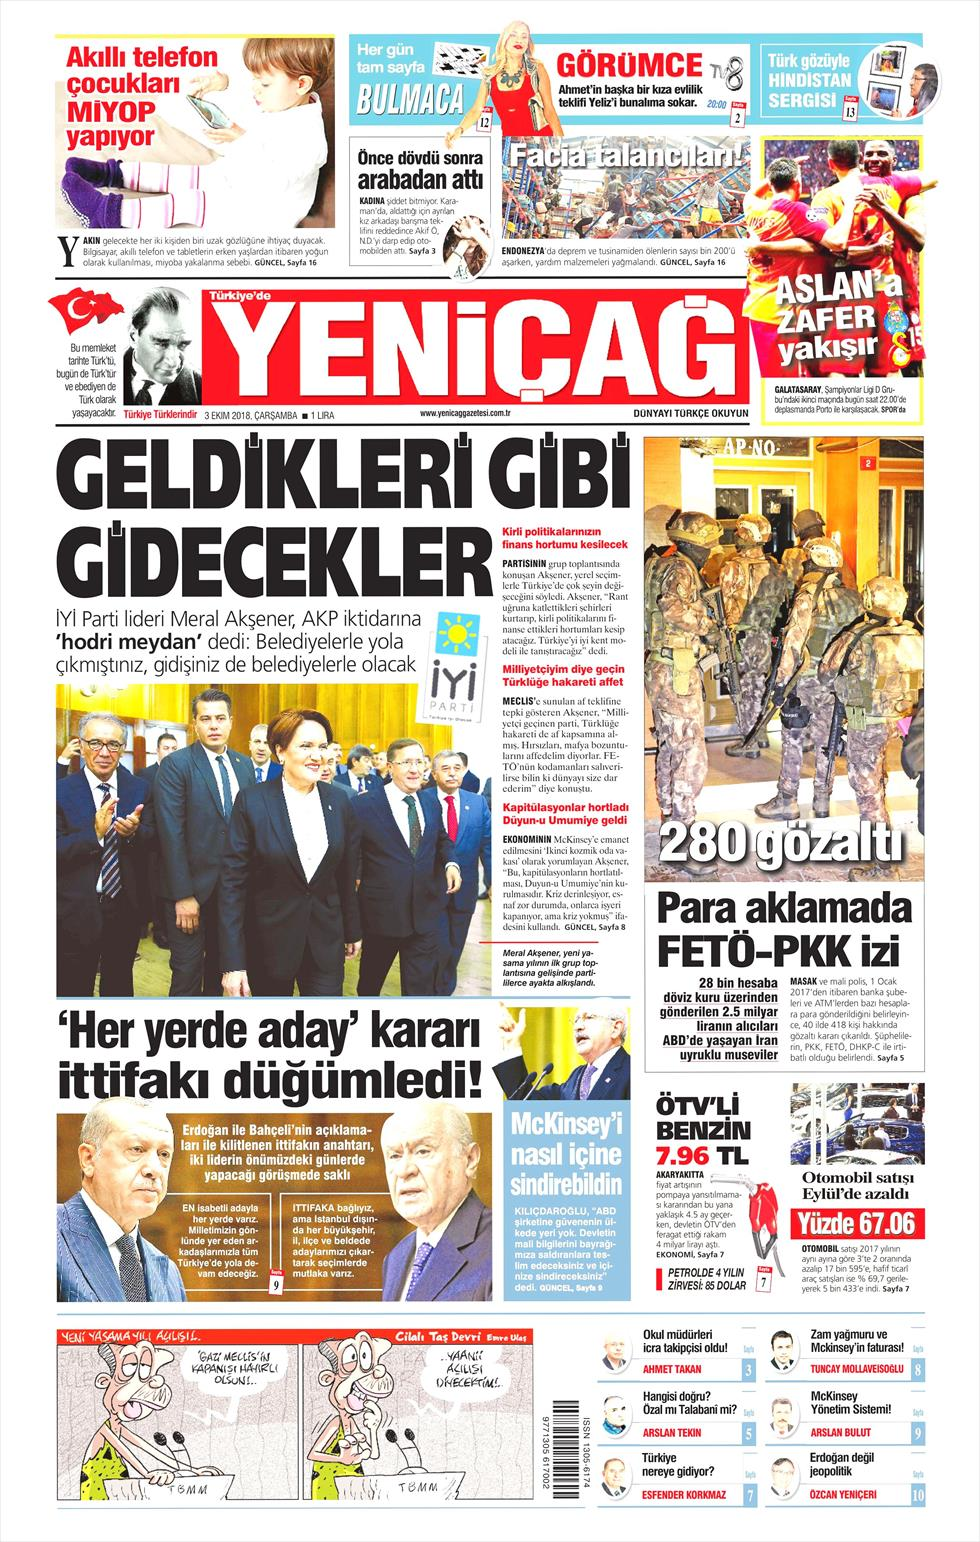 /data/newspapers/yeni-cag.jpg